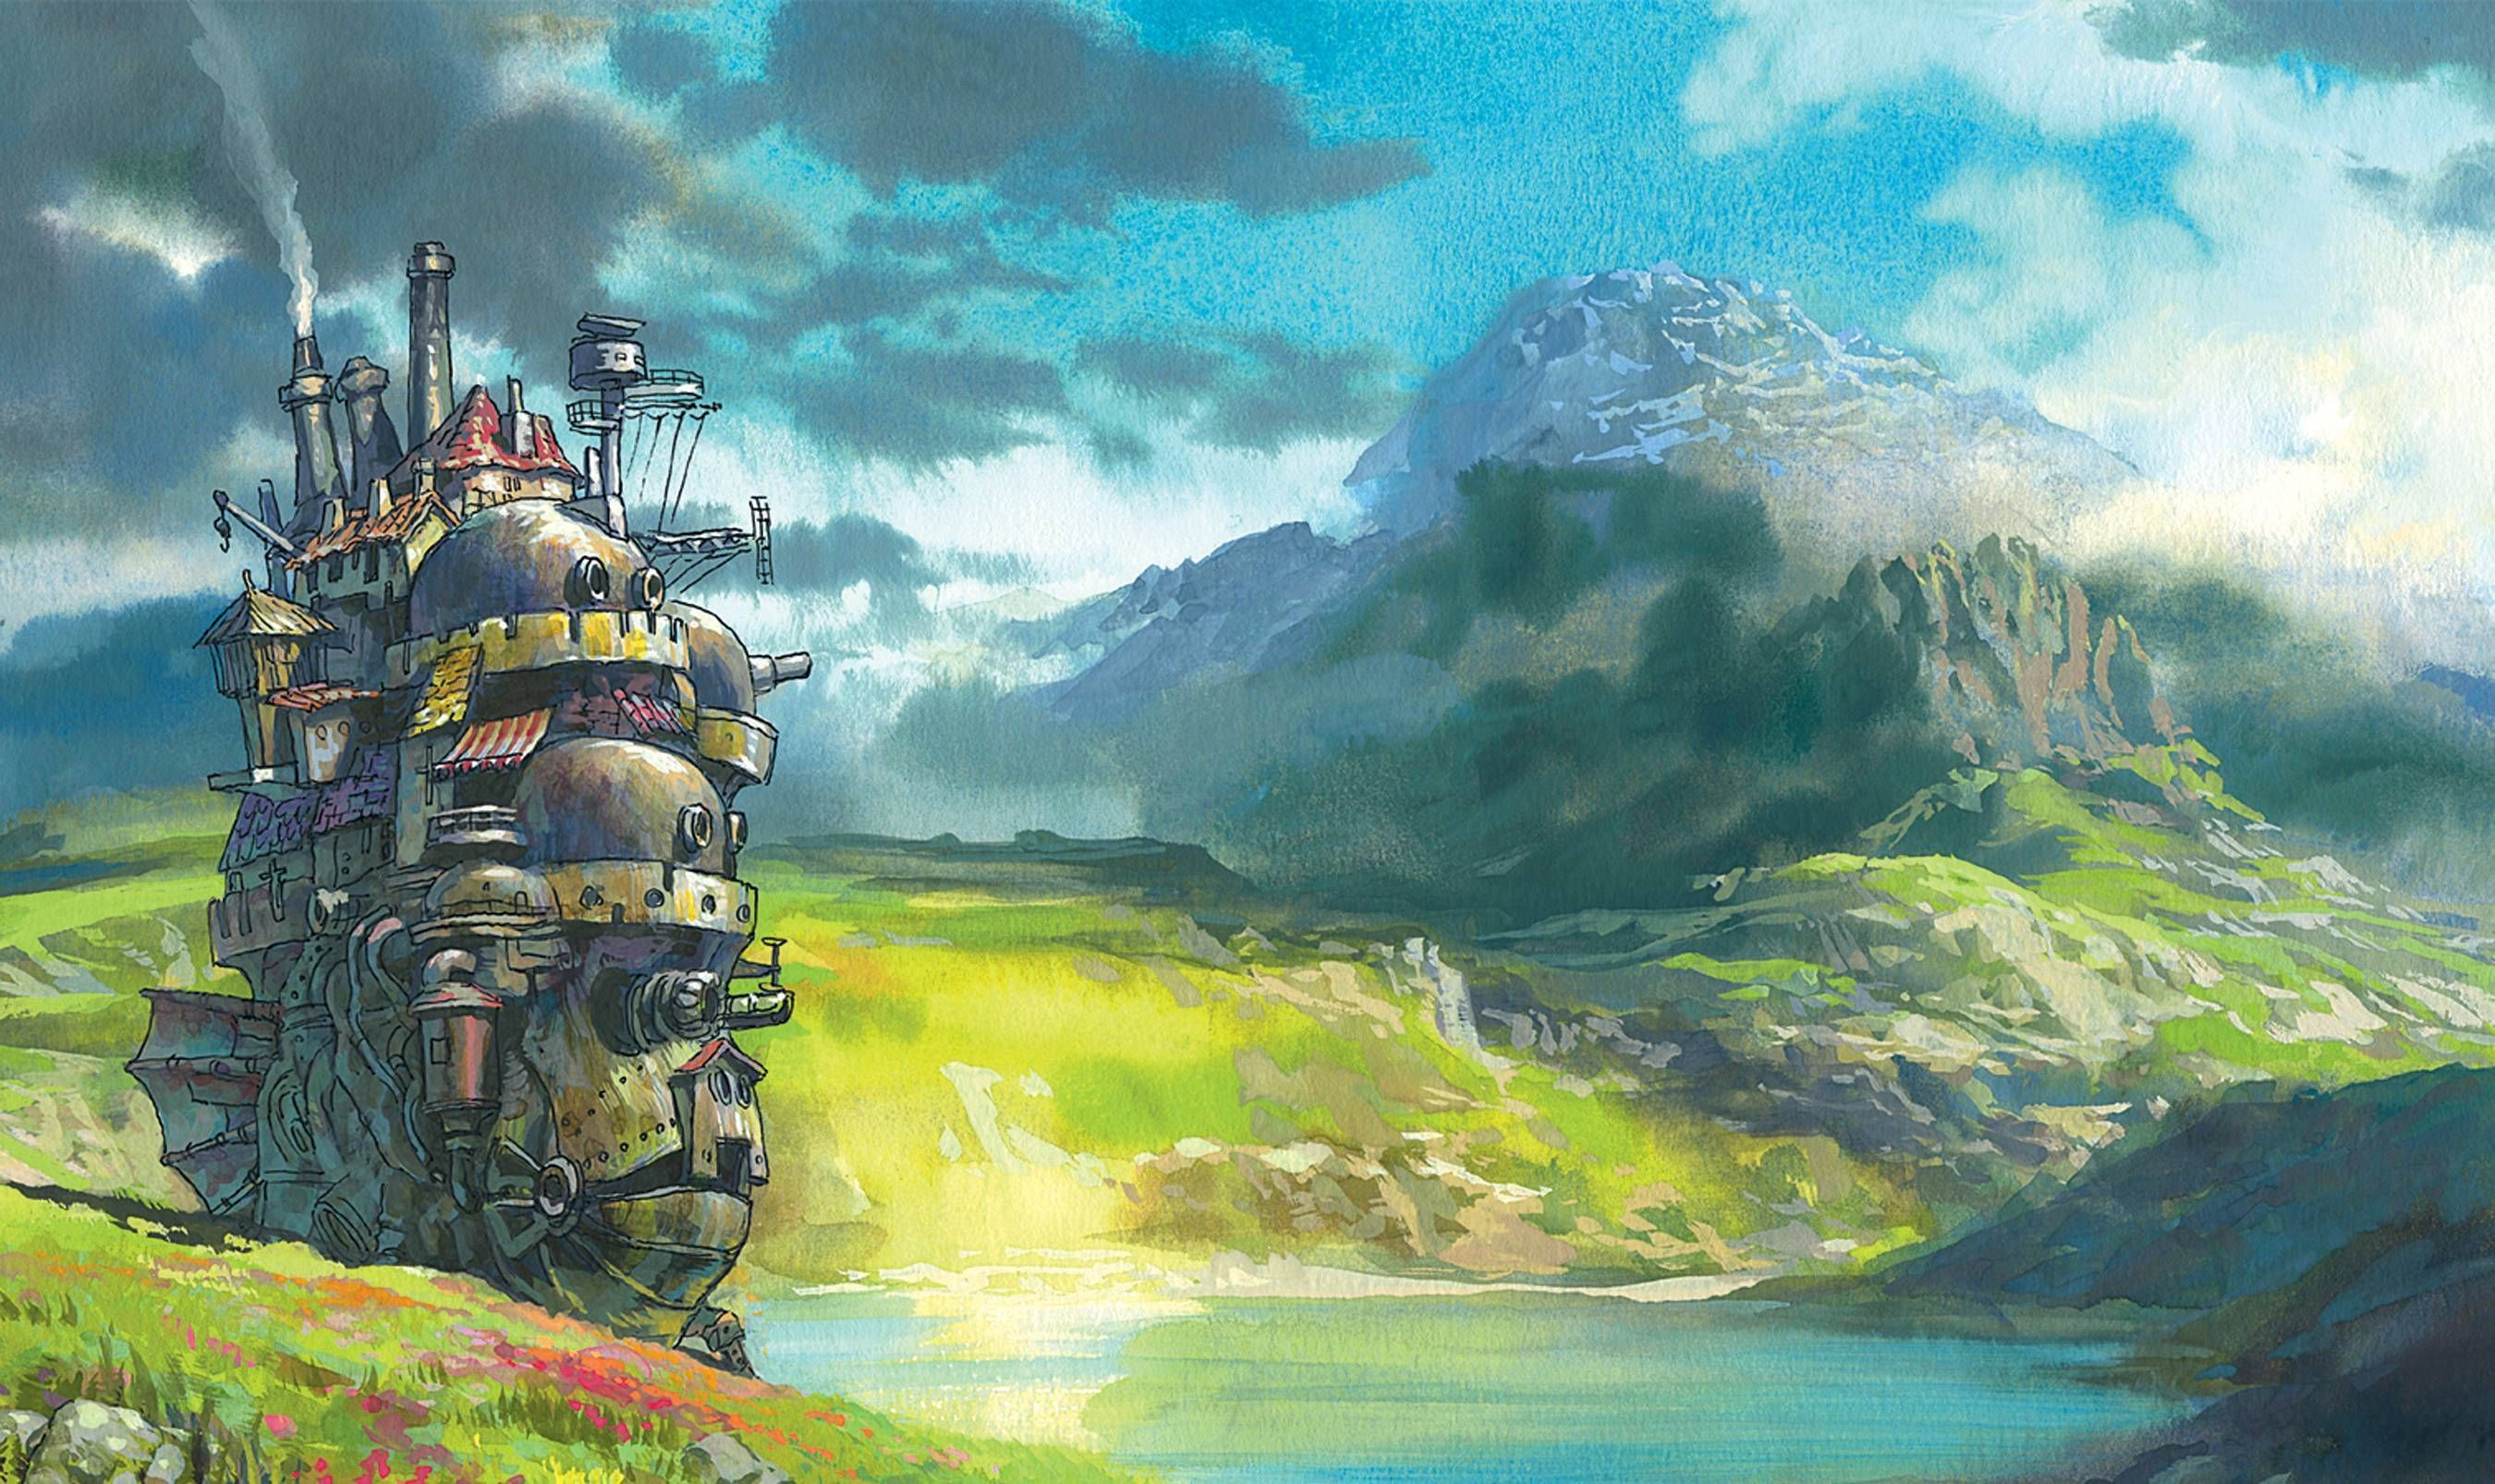 Wallpaper Galore Howls Moving Castle Wallpaper Studio Ghibli Background Ghibli Art